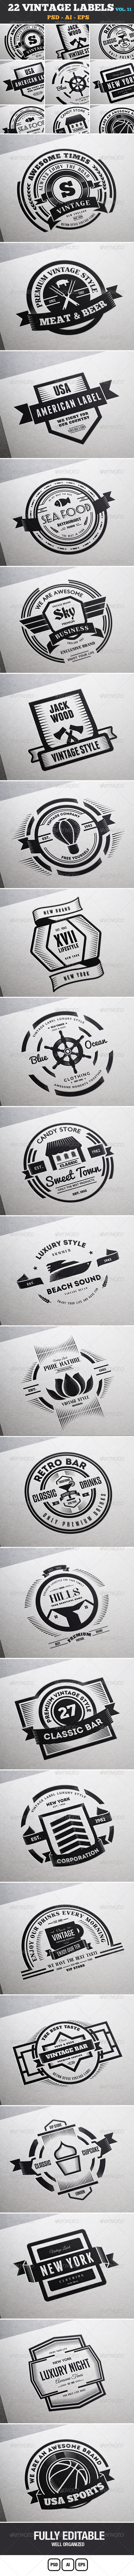 GraphicRiver 22 Vintage Labels & Badges Logos Insignias V11 7533985